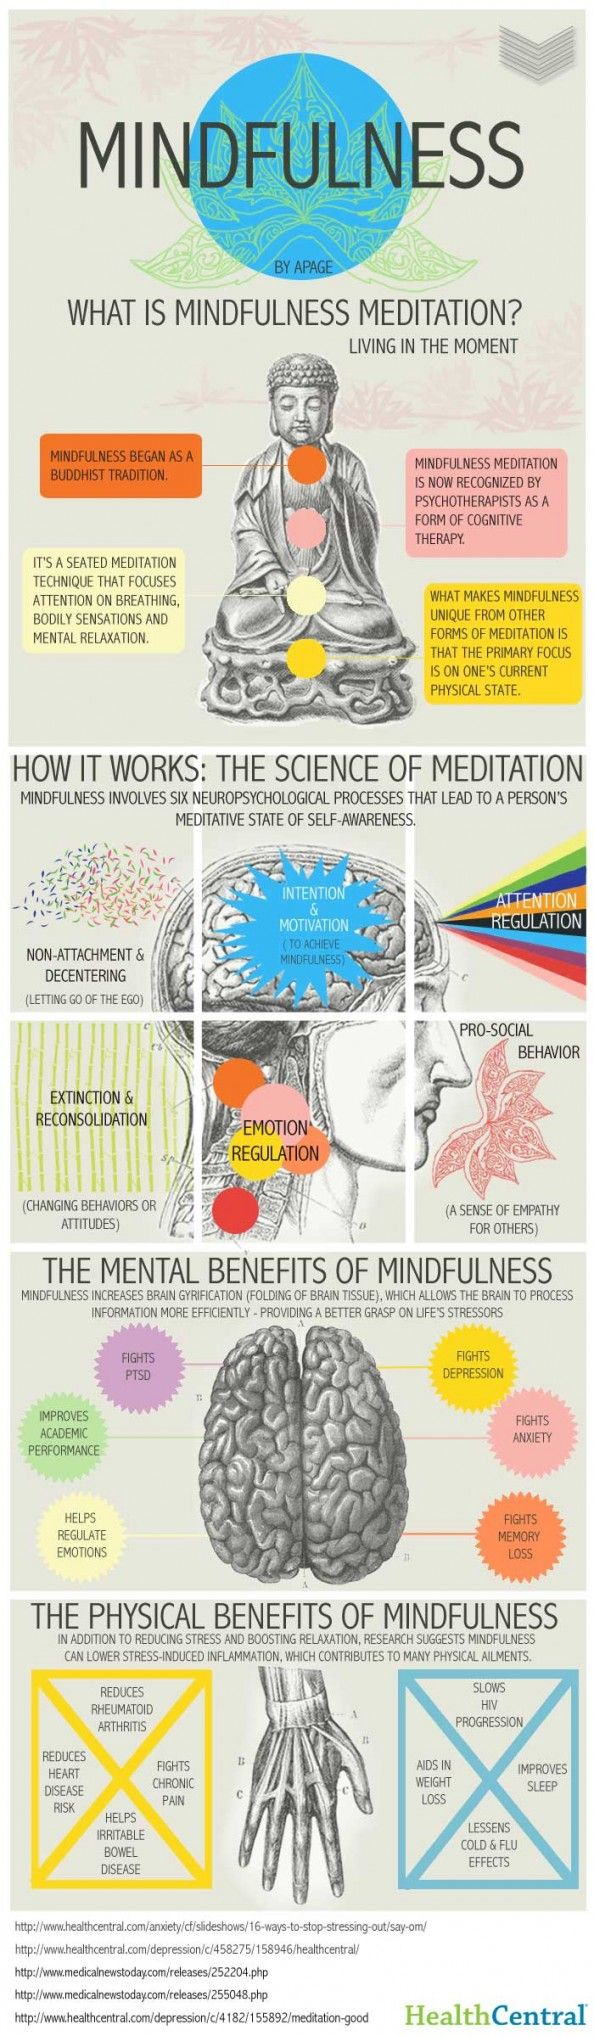 Mindfulness by Health Central: Great infographic about the benefits of meditation